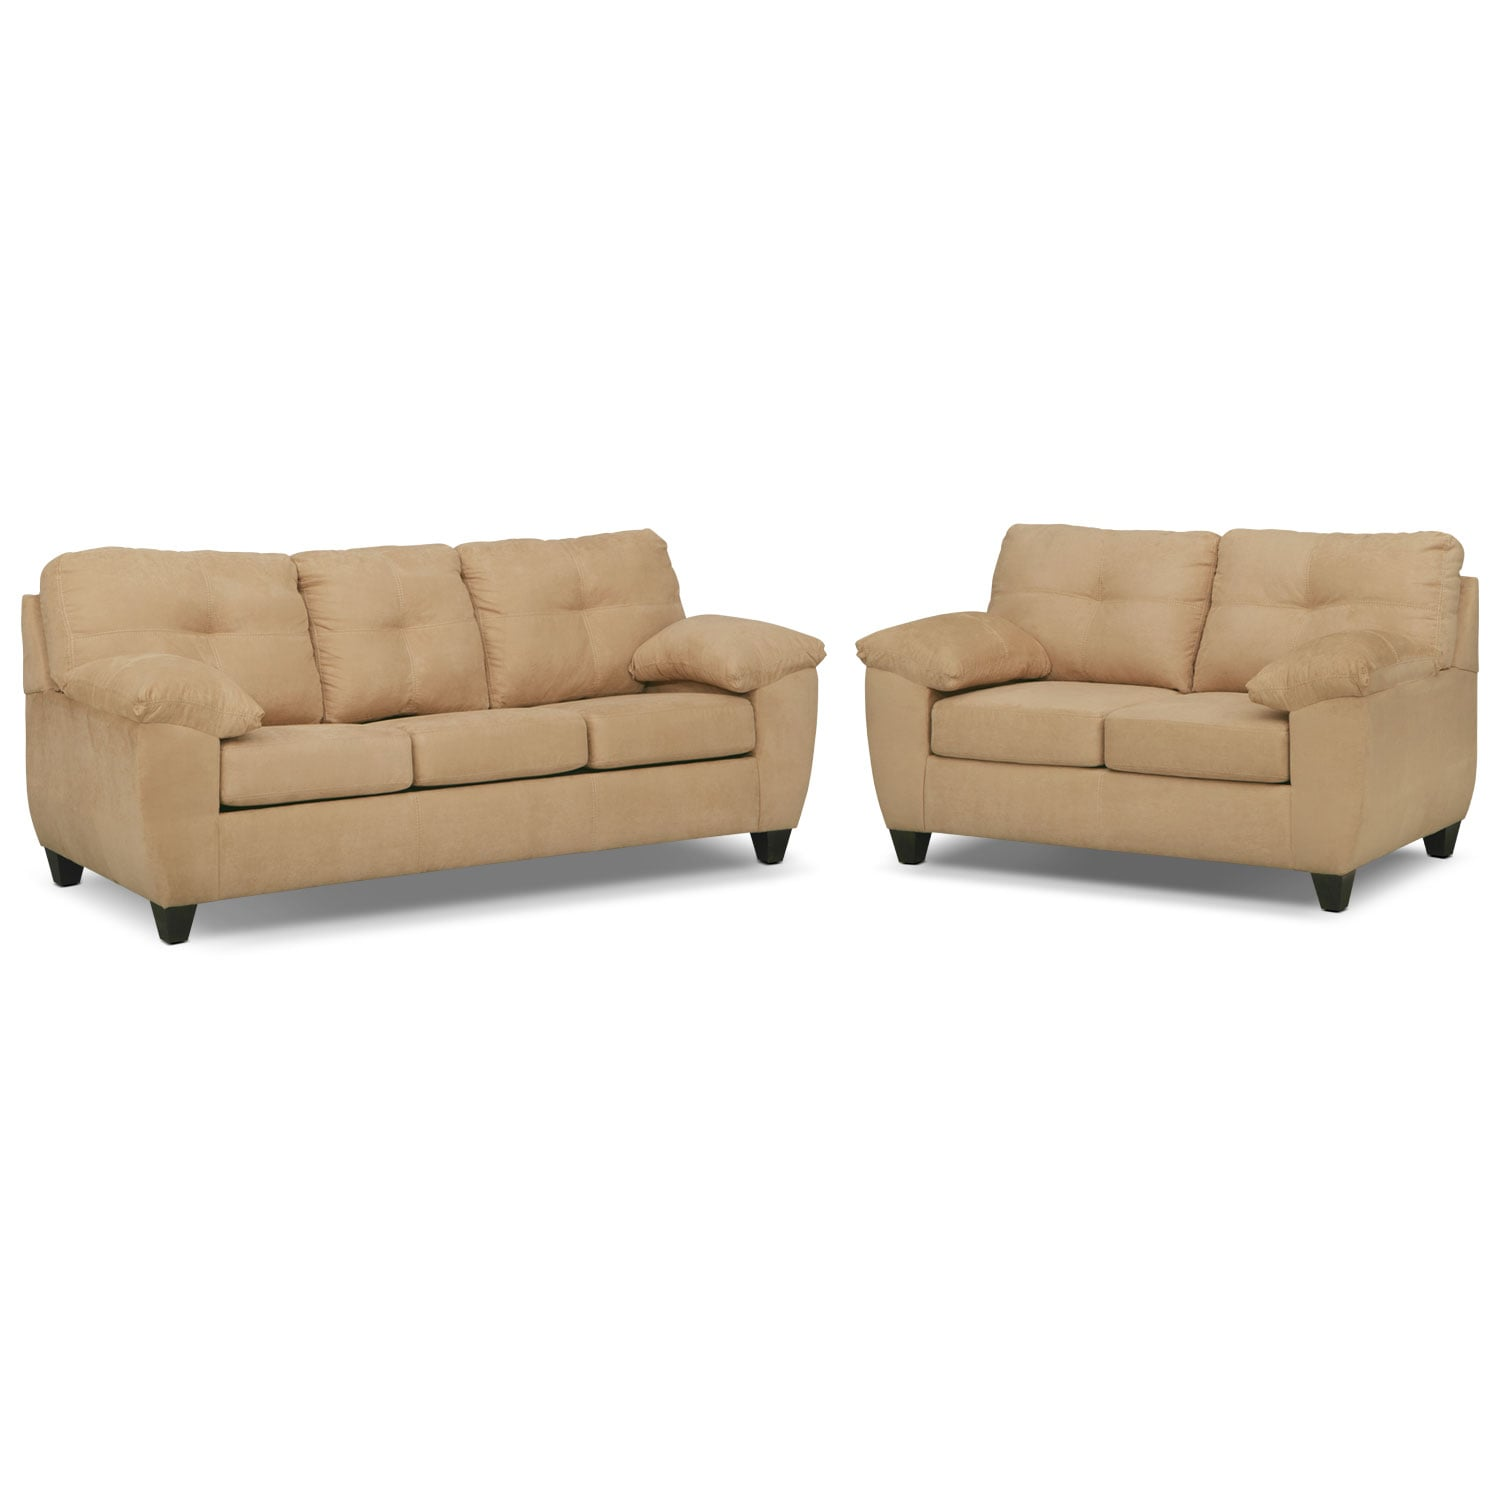 Rialto Sofa and Loveseat Set - Camel